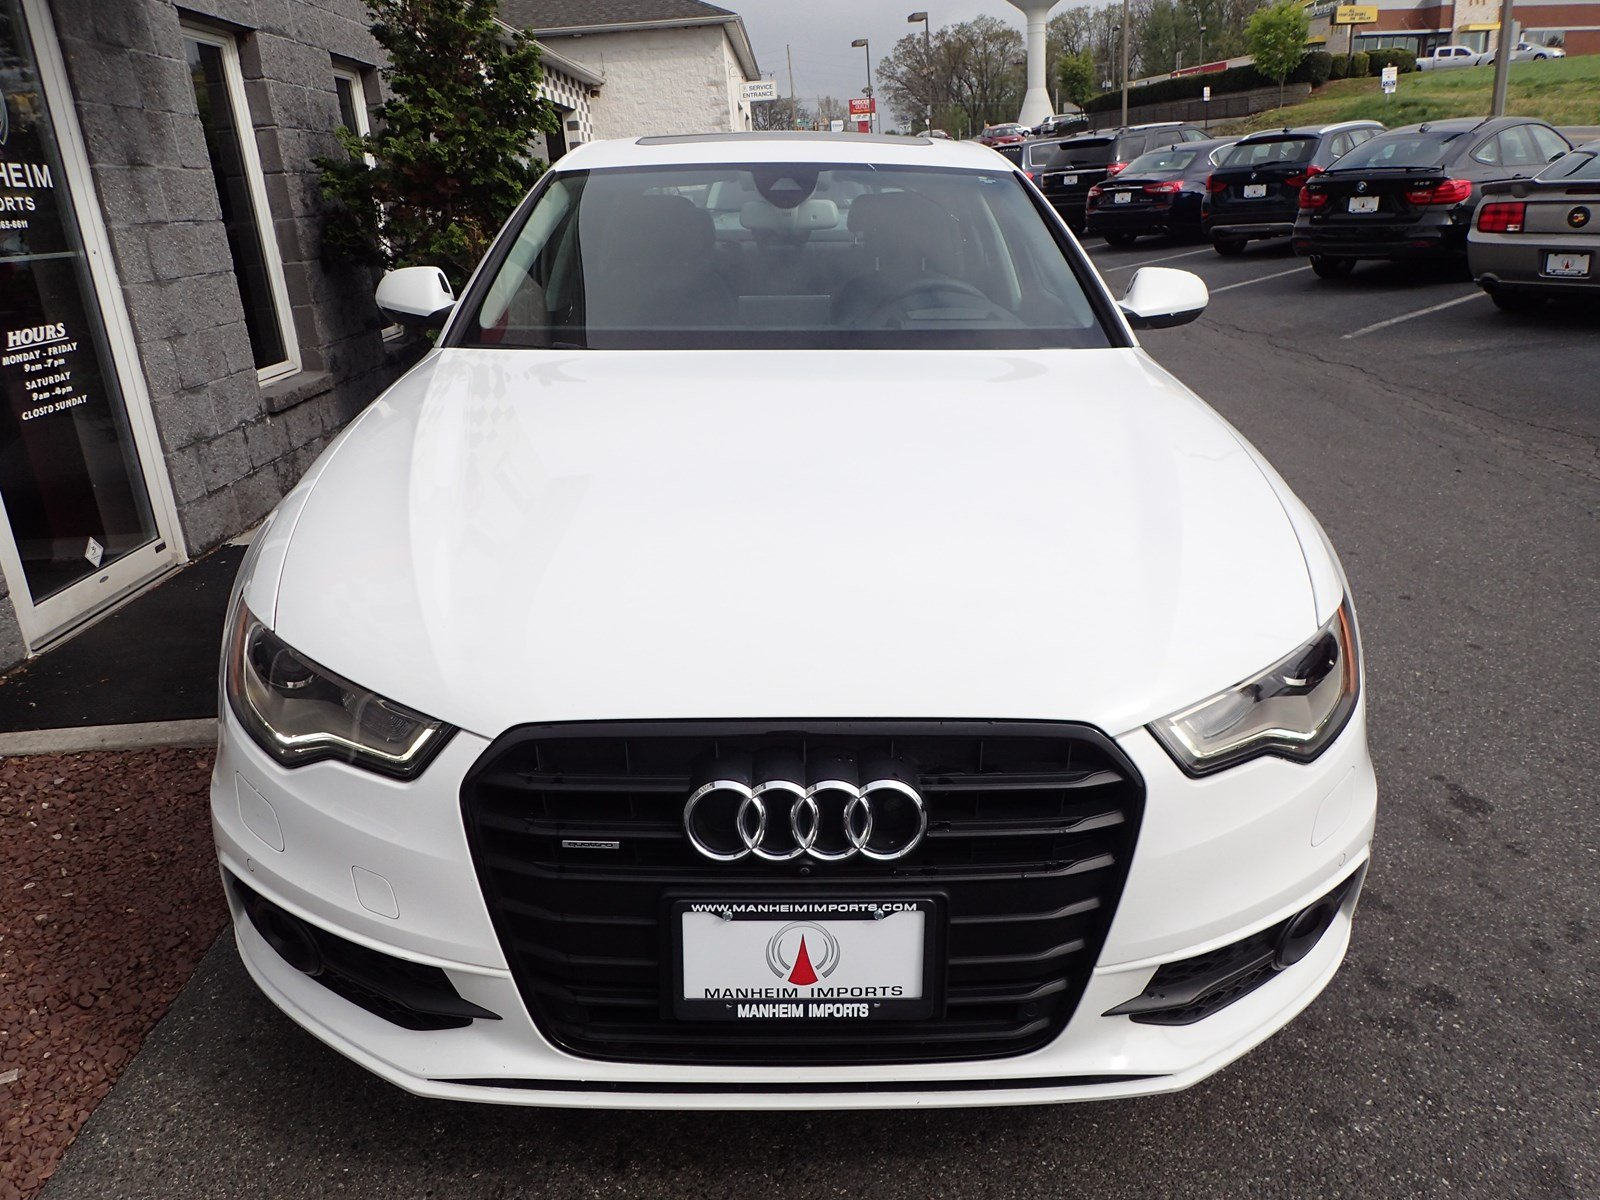 pre owned 2014 audi a6 3 0t prestige black optic 4dr car. Black Bedroom Furniture Sets. Home Design Ideas